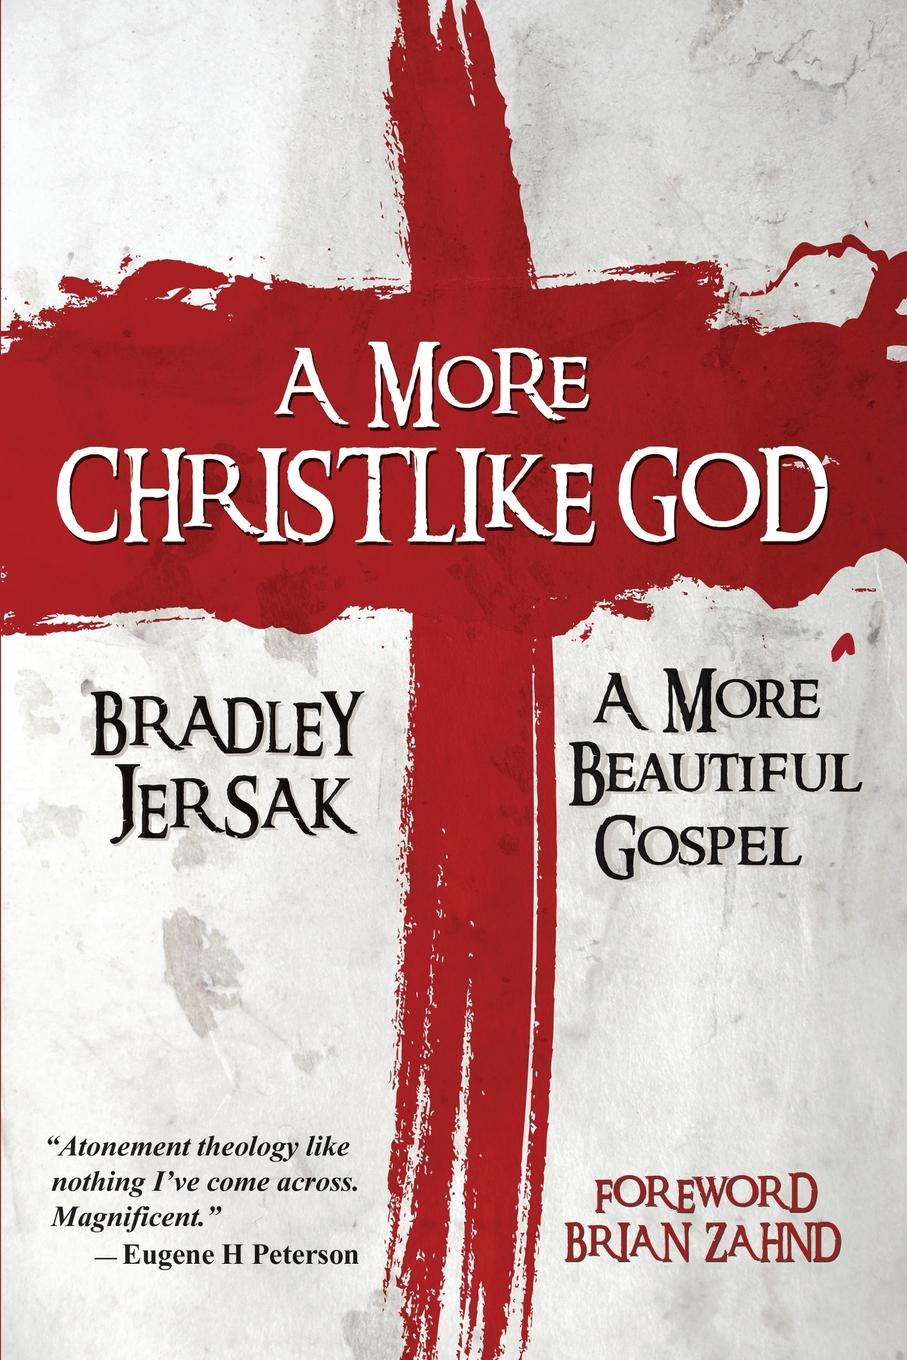 Bradley Jersak A More Christlike God. A More Beautiful Gospel bakunin mikhail aleksandrovich god and the state